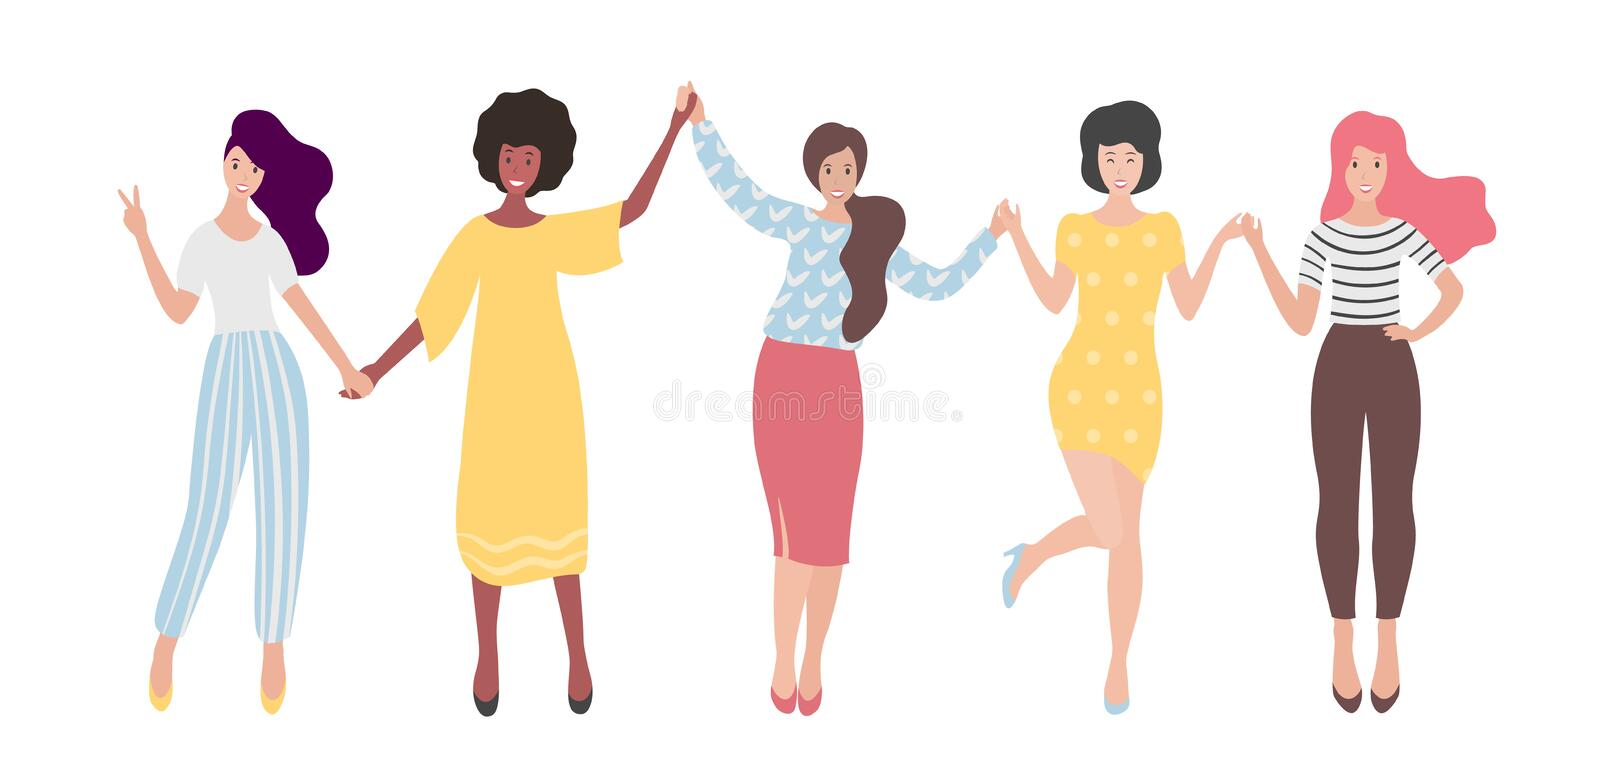 Diverse international group of standing women or girl holding hands. Sisterhood, friends, union of feminists. royalty free illustration